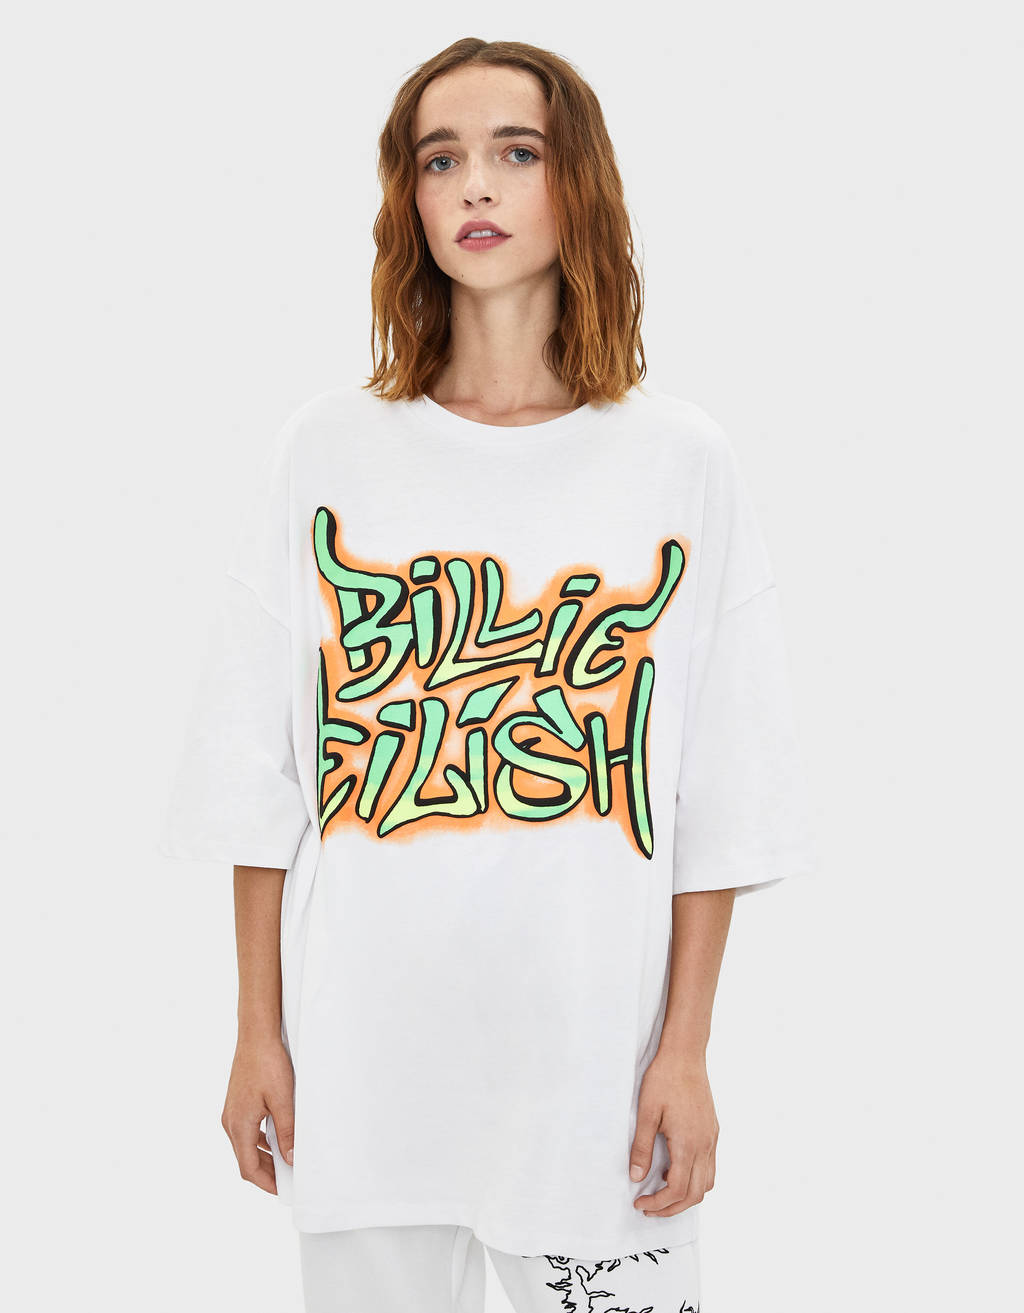 T-shirt avec un graffiti Billie Eilish x Bershka